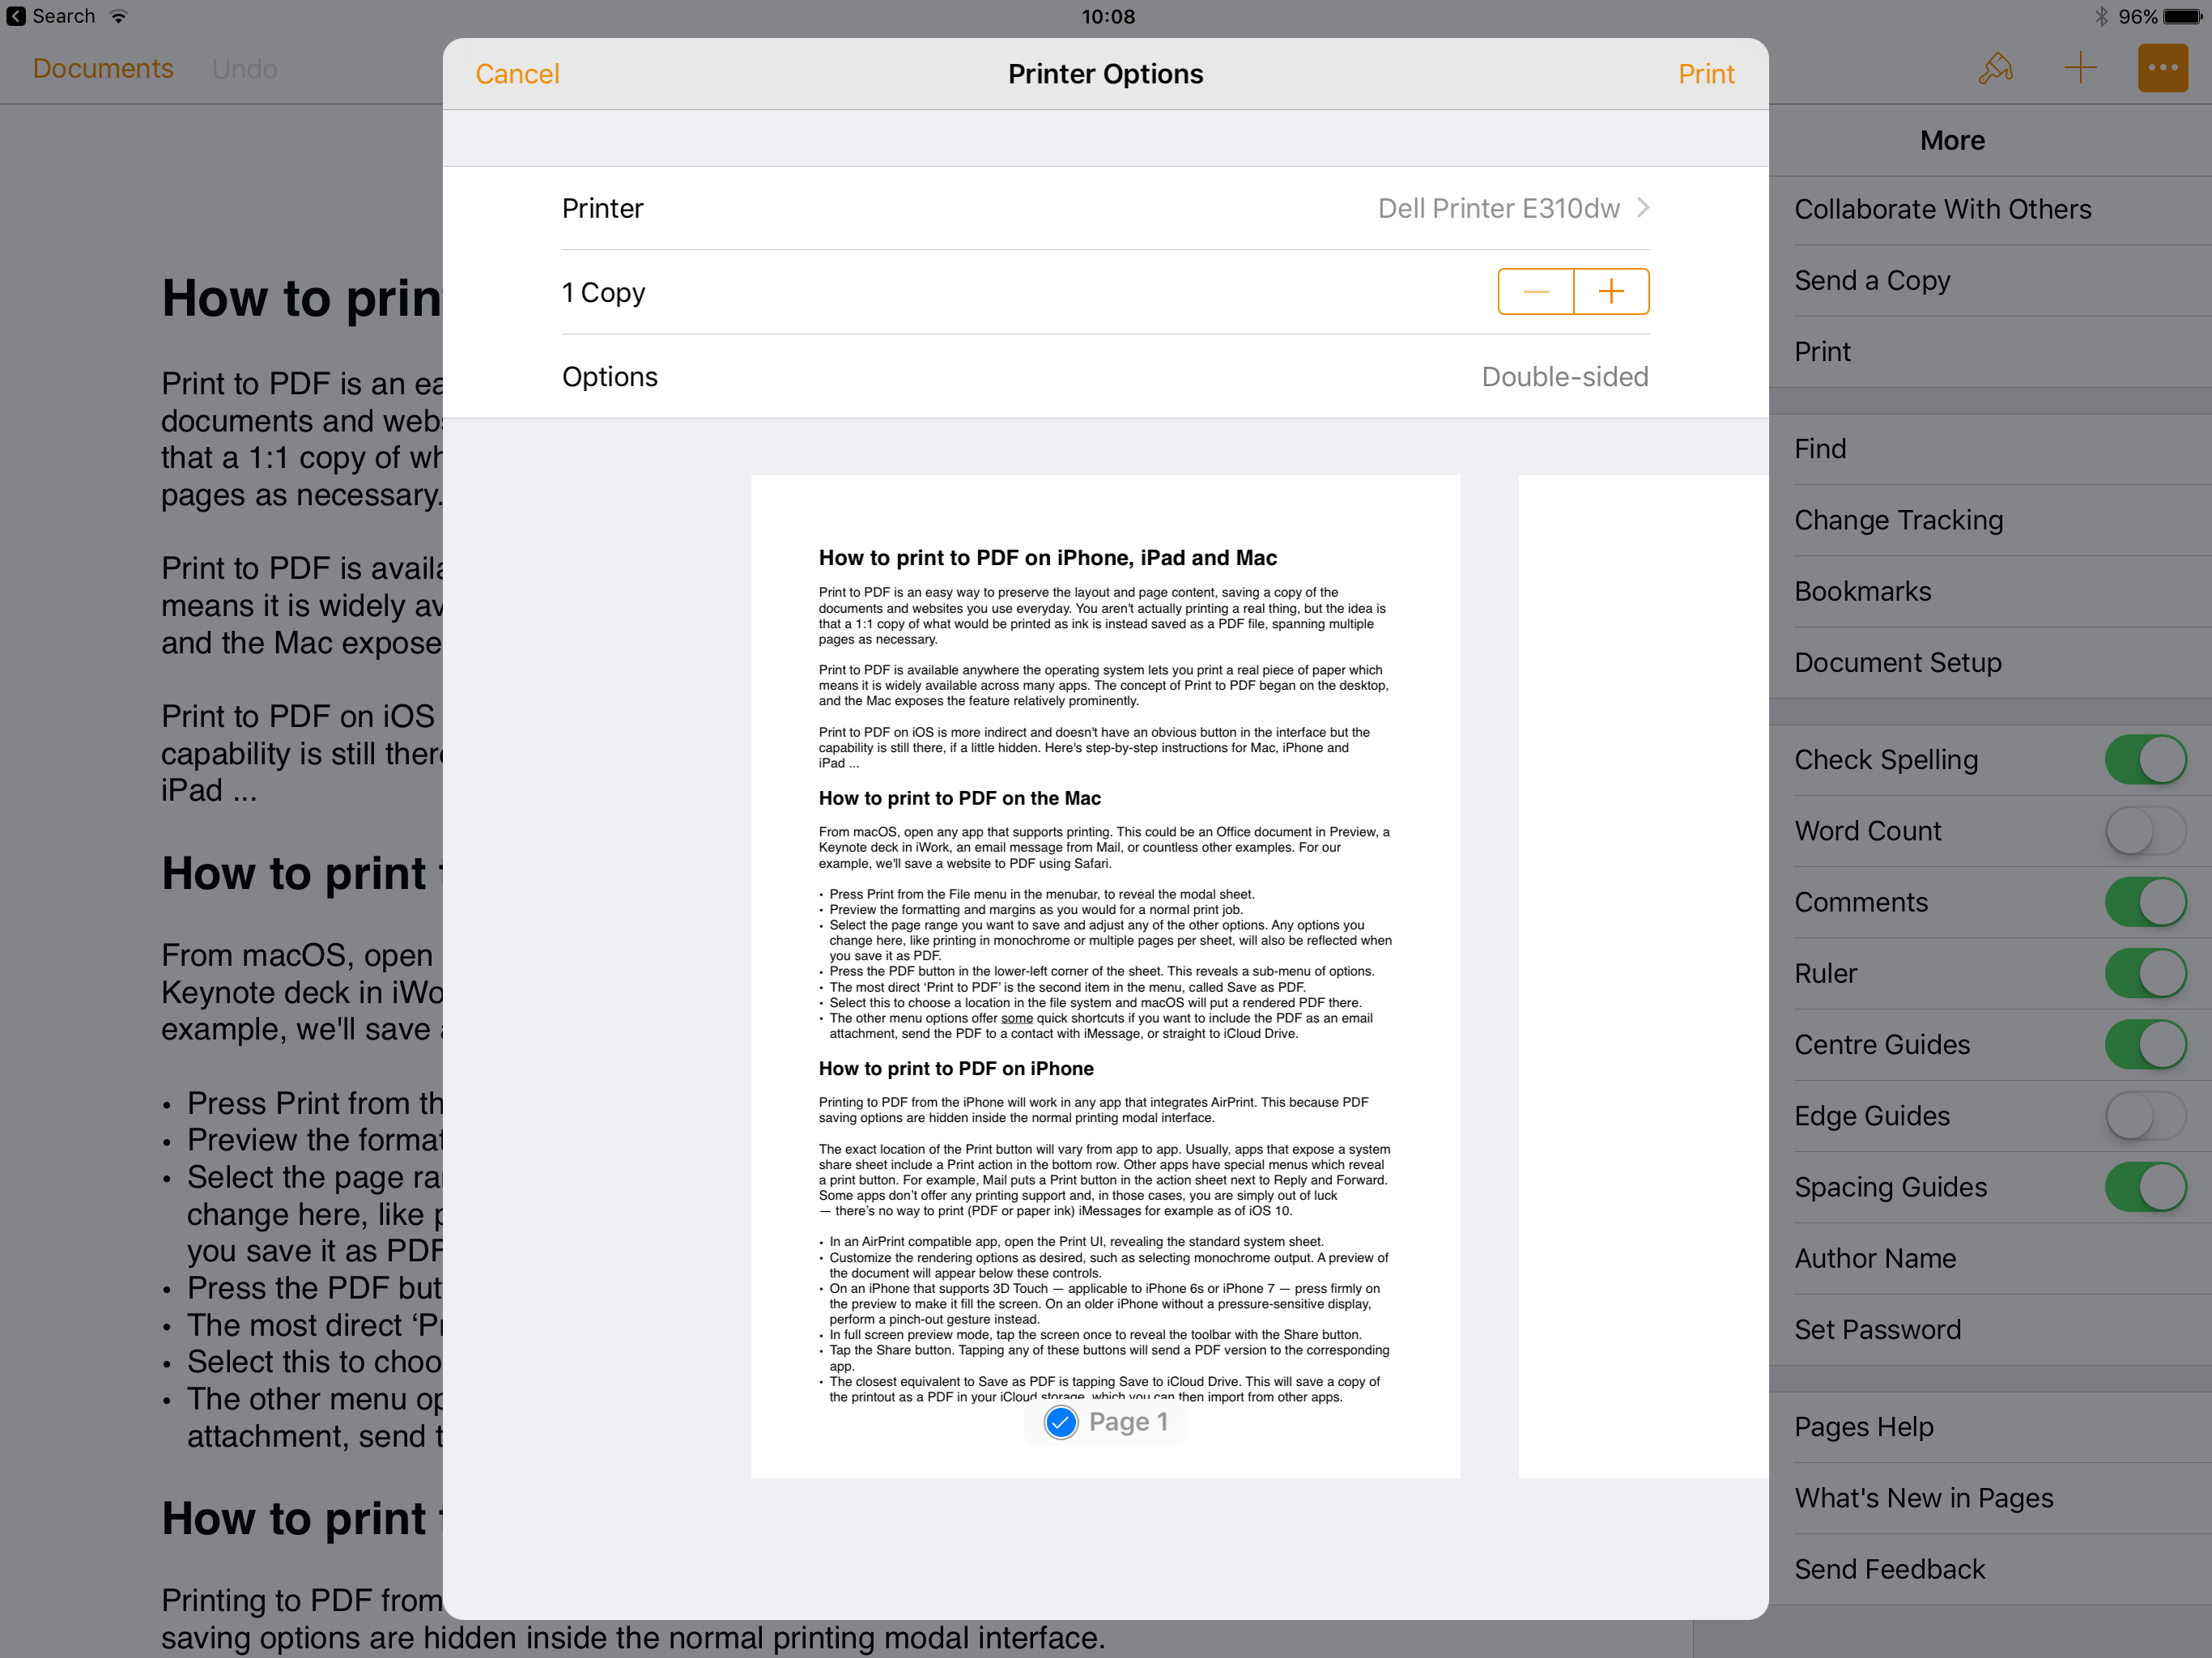 How to print to PDF on iPhone, iPad, and Mac - 9to5Mac